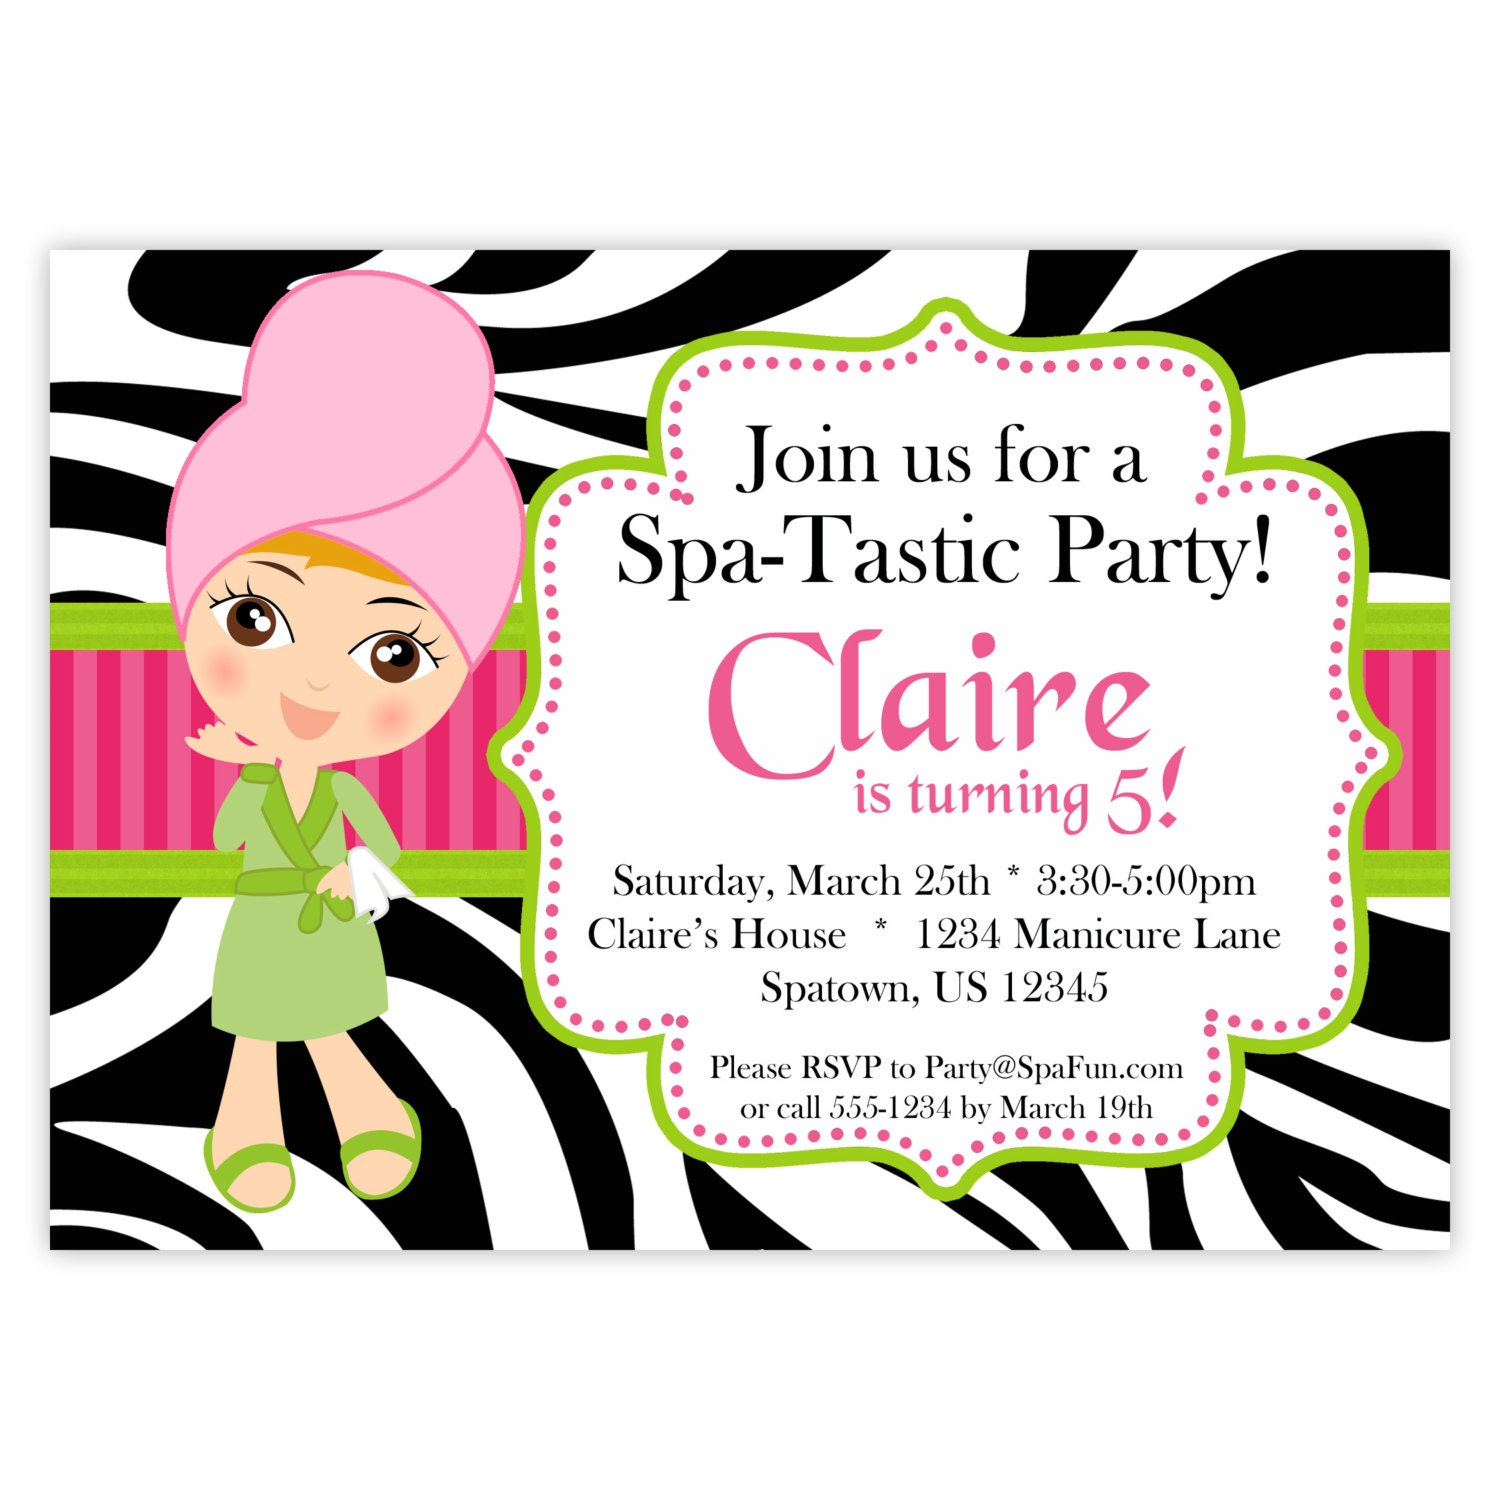 Spa Party Invitation Lime Hot Pink and Zebra Print Cute